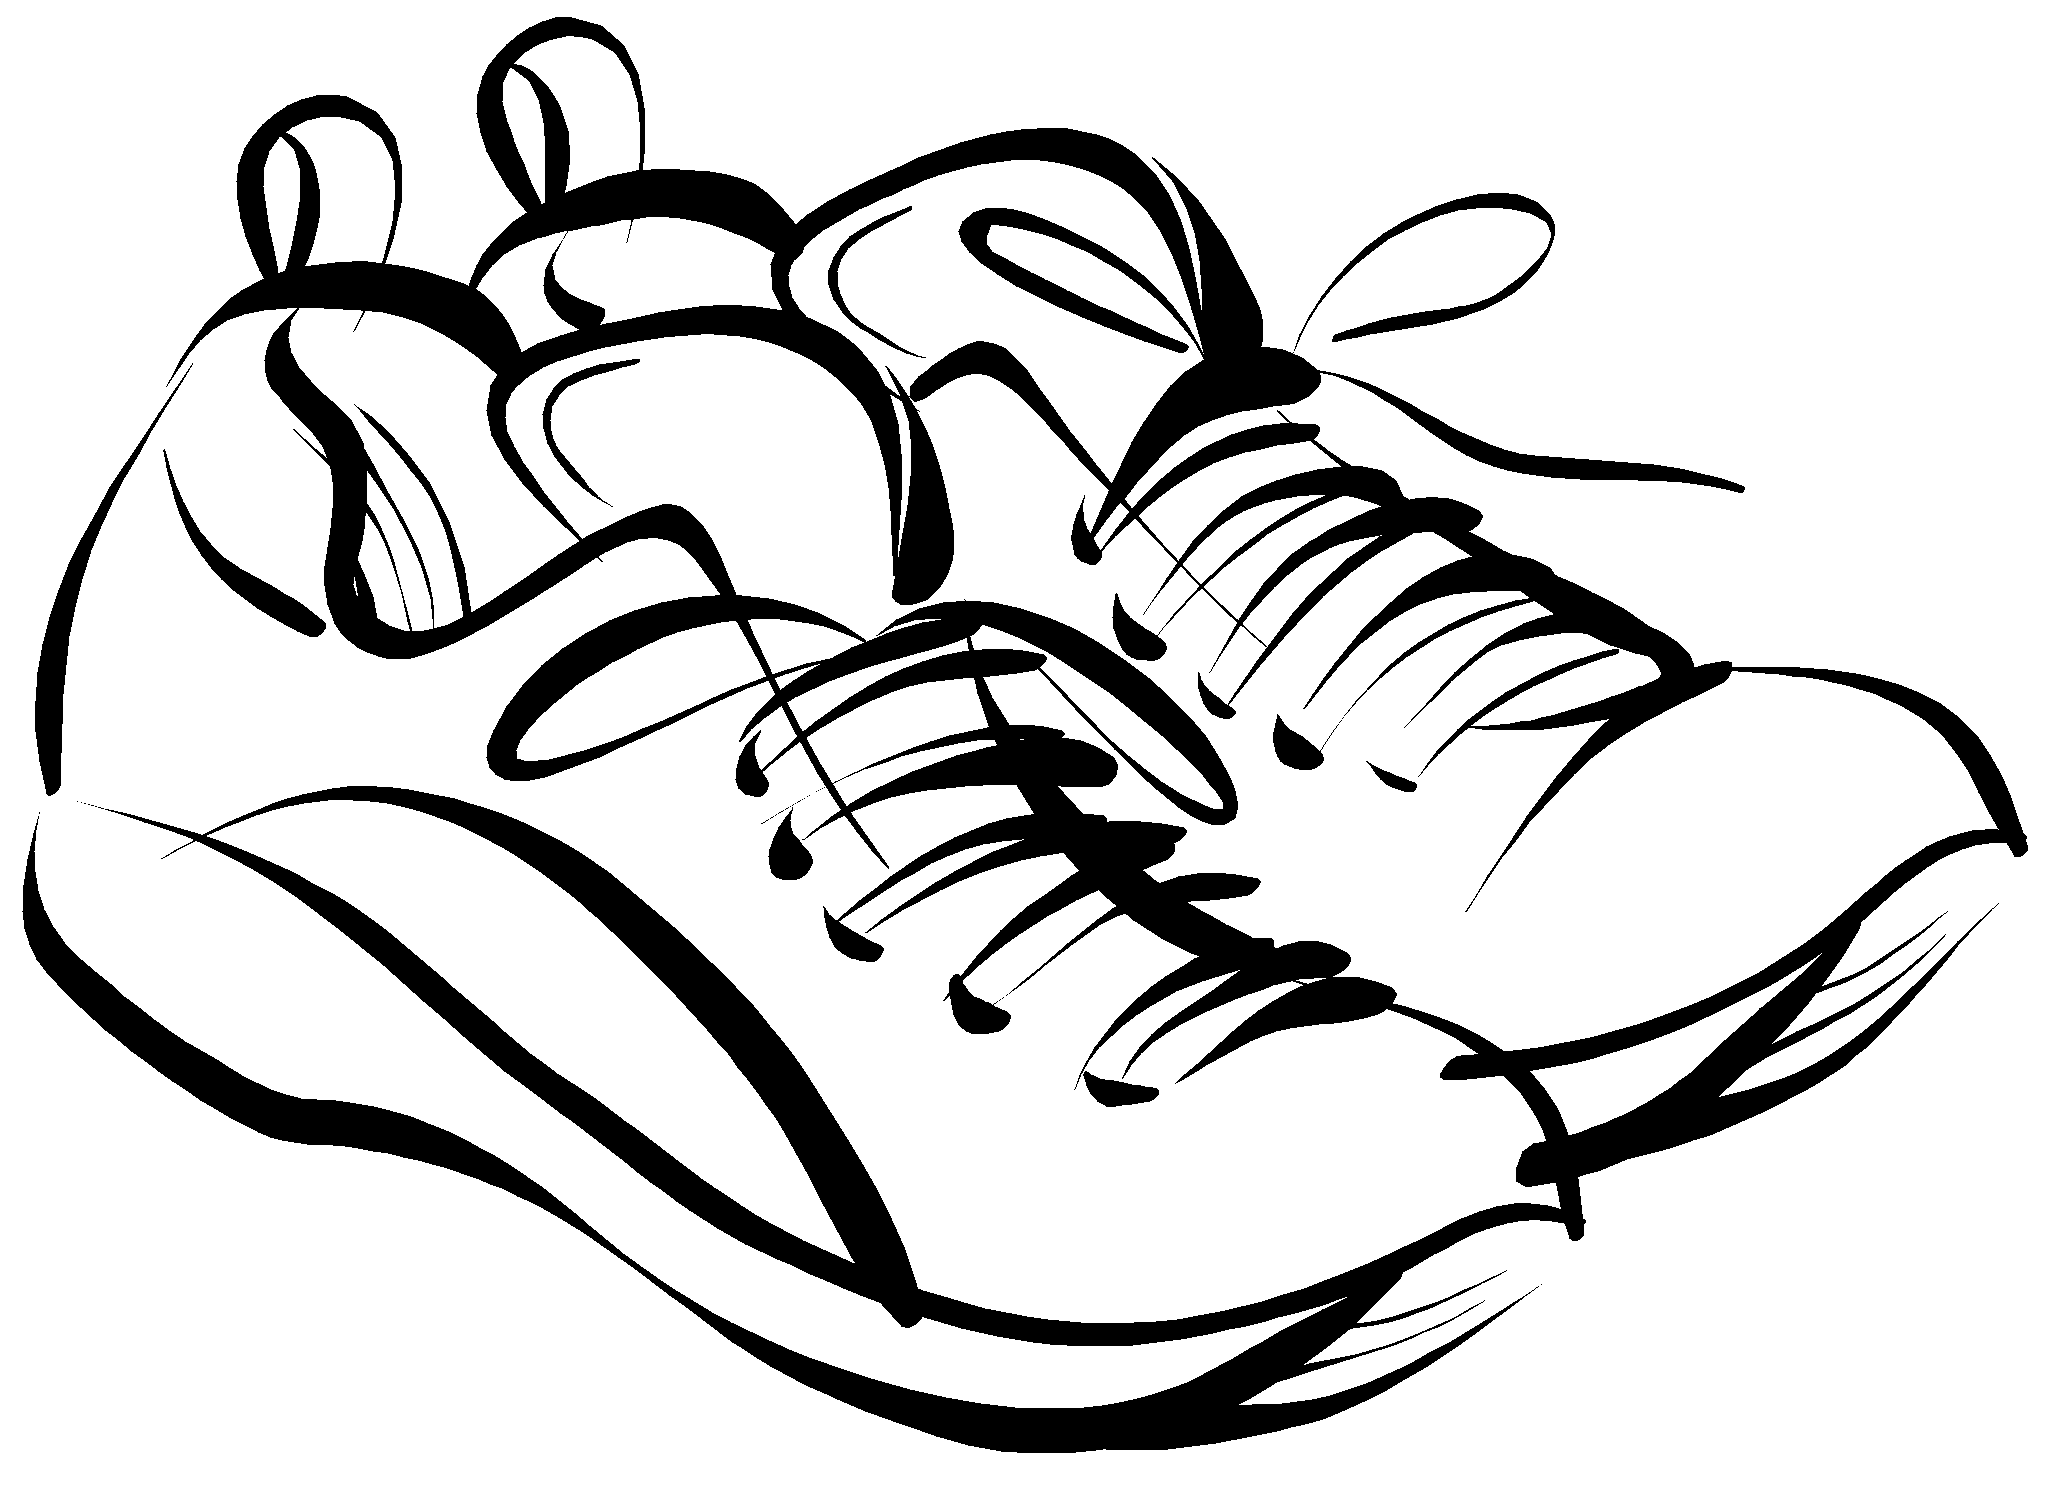 Running shoe images clipart clip art transparent Free Running Sneakers Cliparts, Download Free Clip Art, Free ... clip art transparent